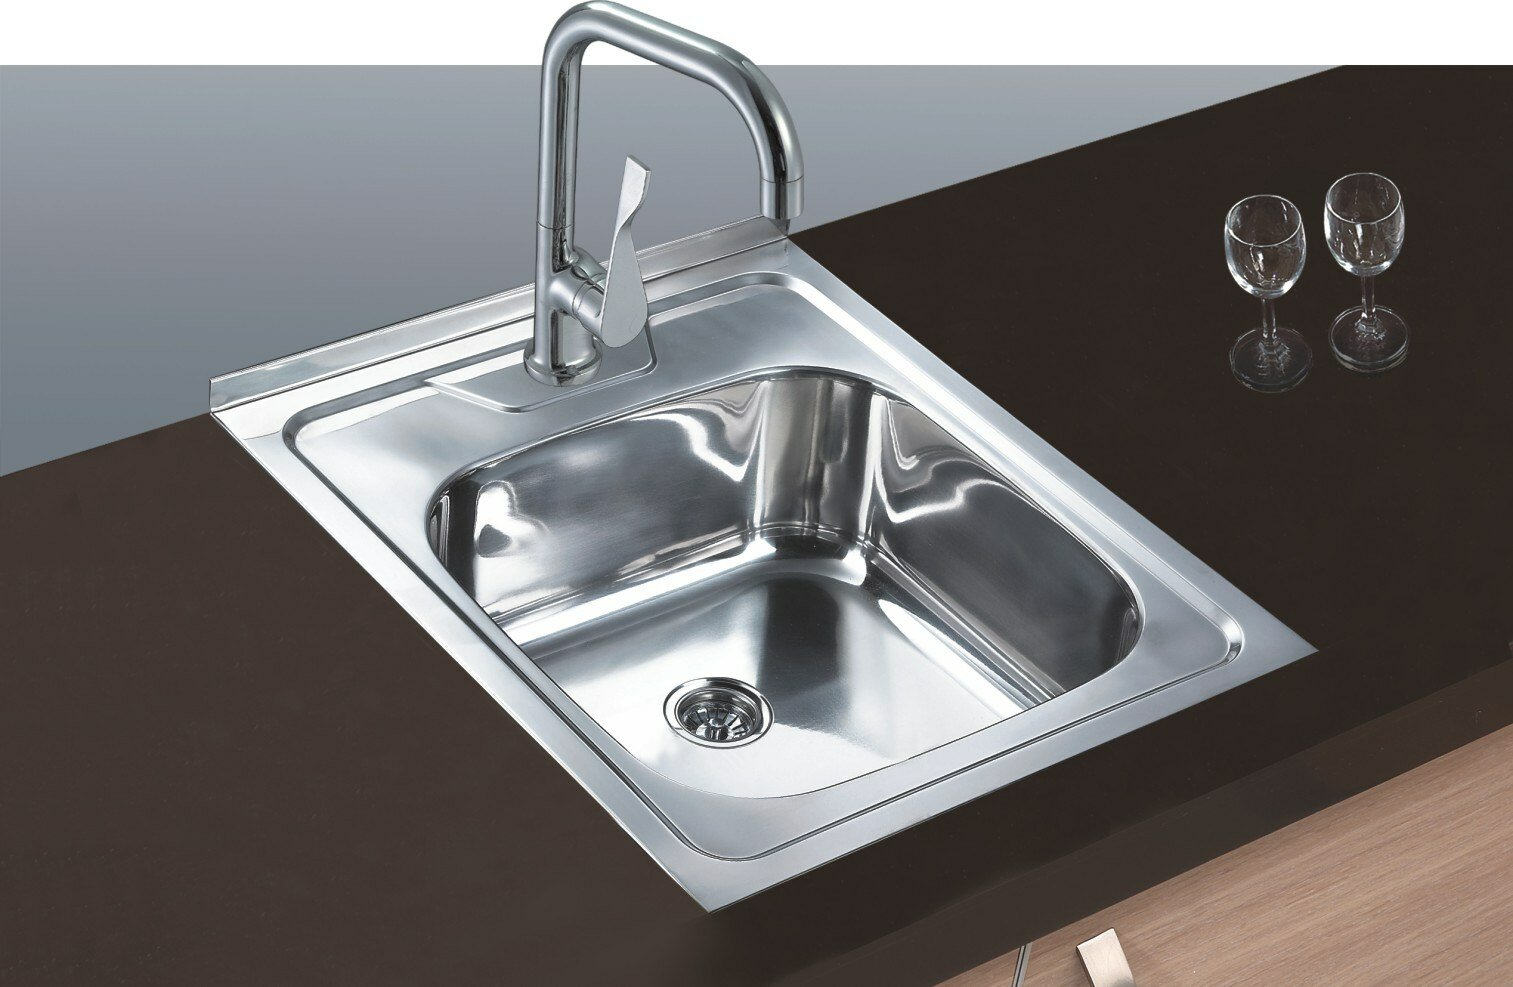 Cozy Kitchen Sinks Stainless Steel for Traditional Kitchen Design: Metal Kitchen Sinks | Kitchen Sinks Stainless Steel | One Bowl Stainless Steel Kitchen Sinks